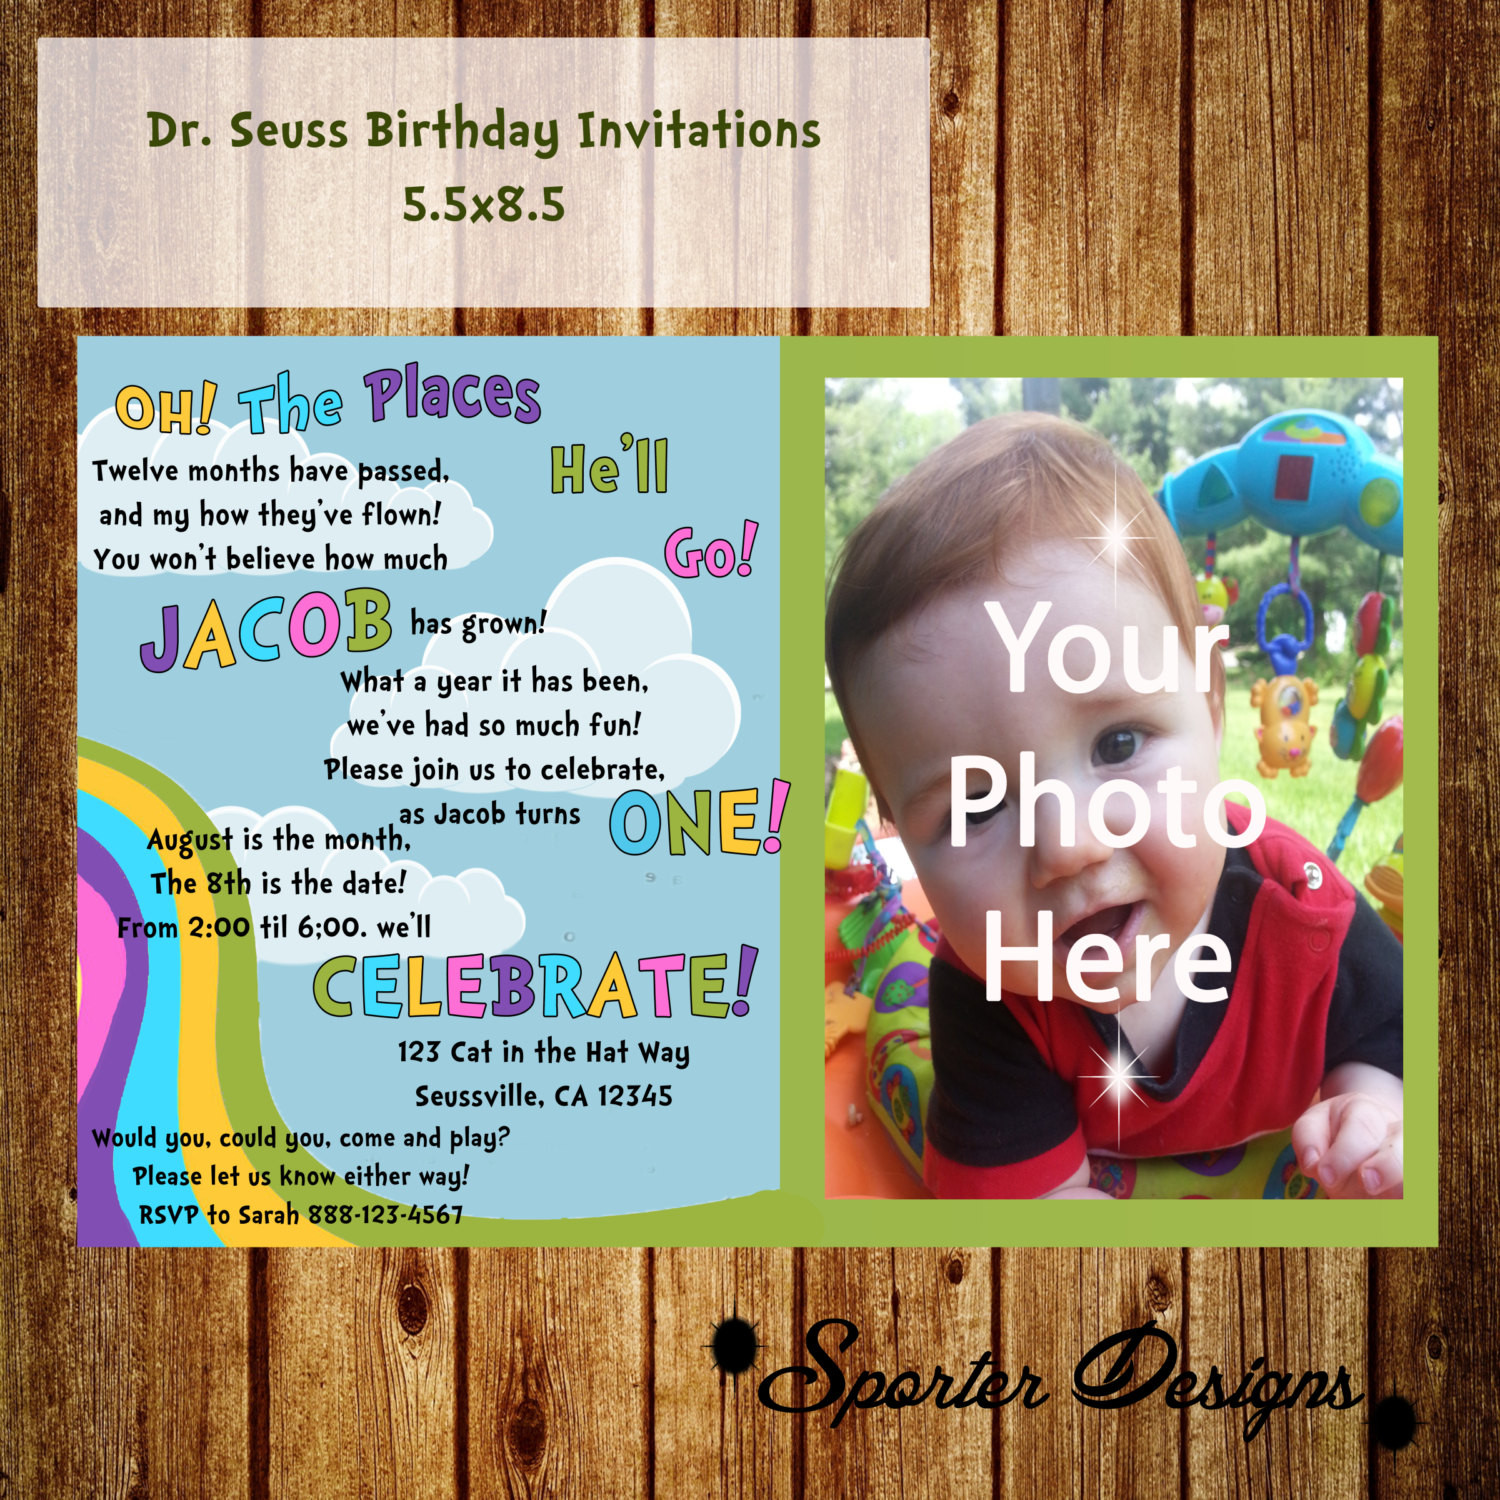 Best ideas about Dr Seuss 1st Birthday Invitations . Save or Pin Dr Seuss First Birthday Invitations 5 5x8 5 Now.